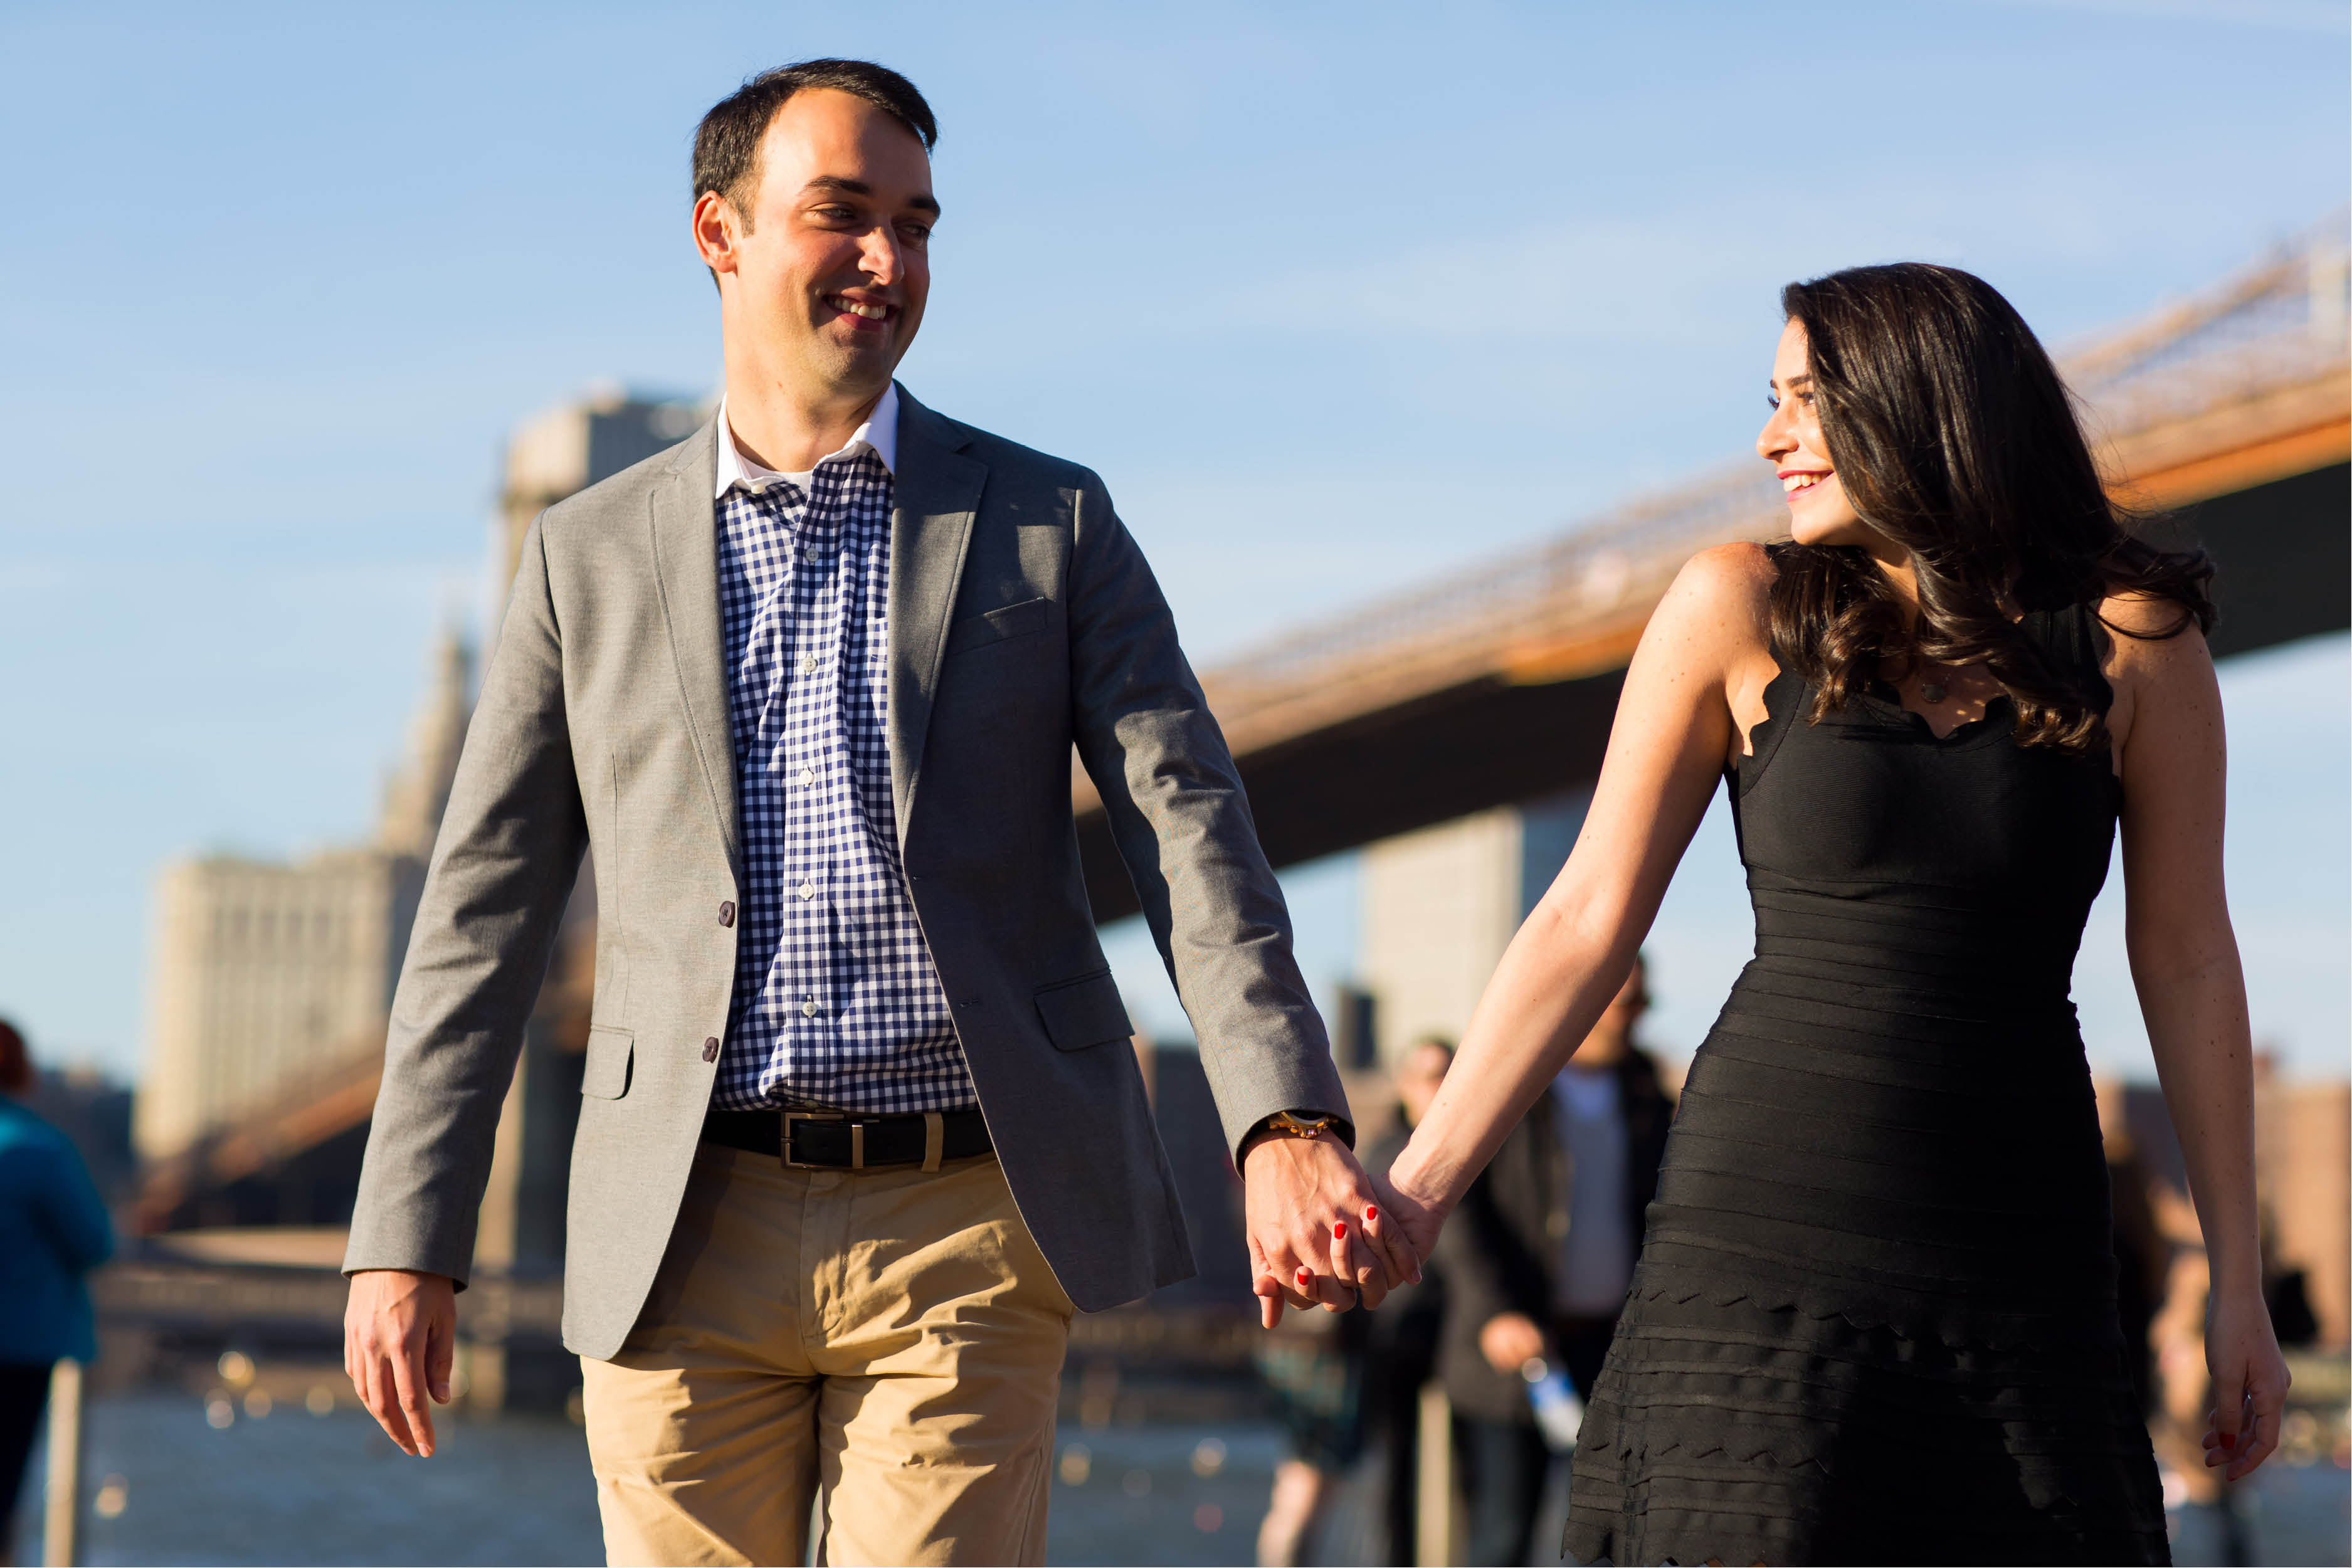 Emma_cleary_photography Dumbo Engagement shoot